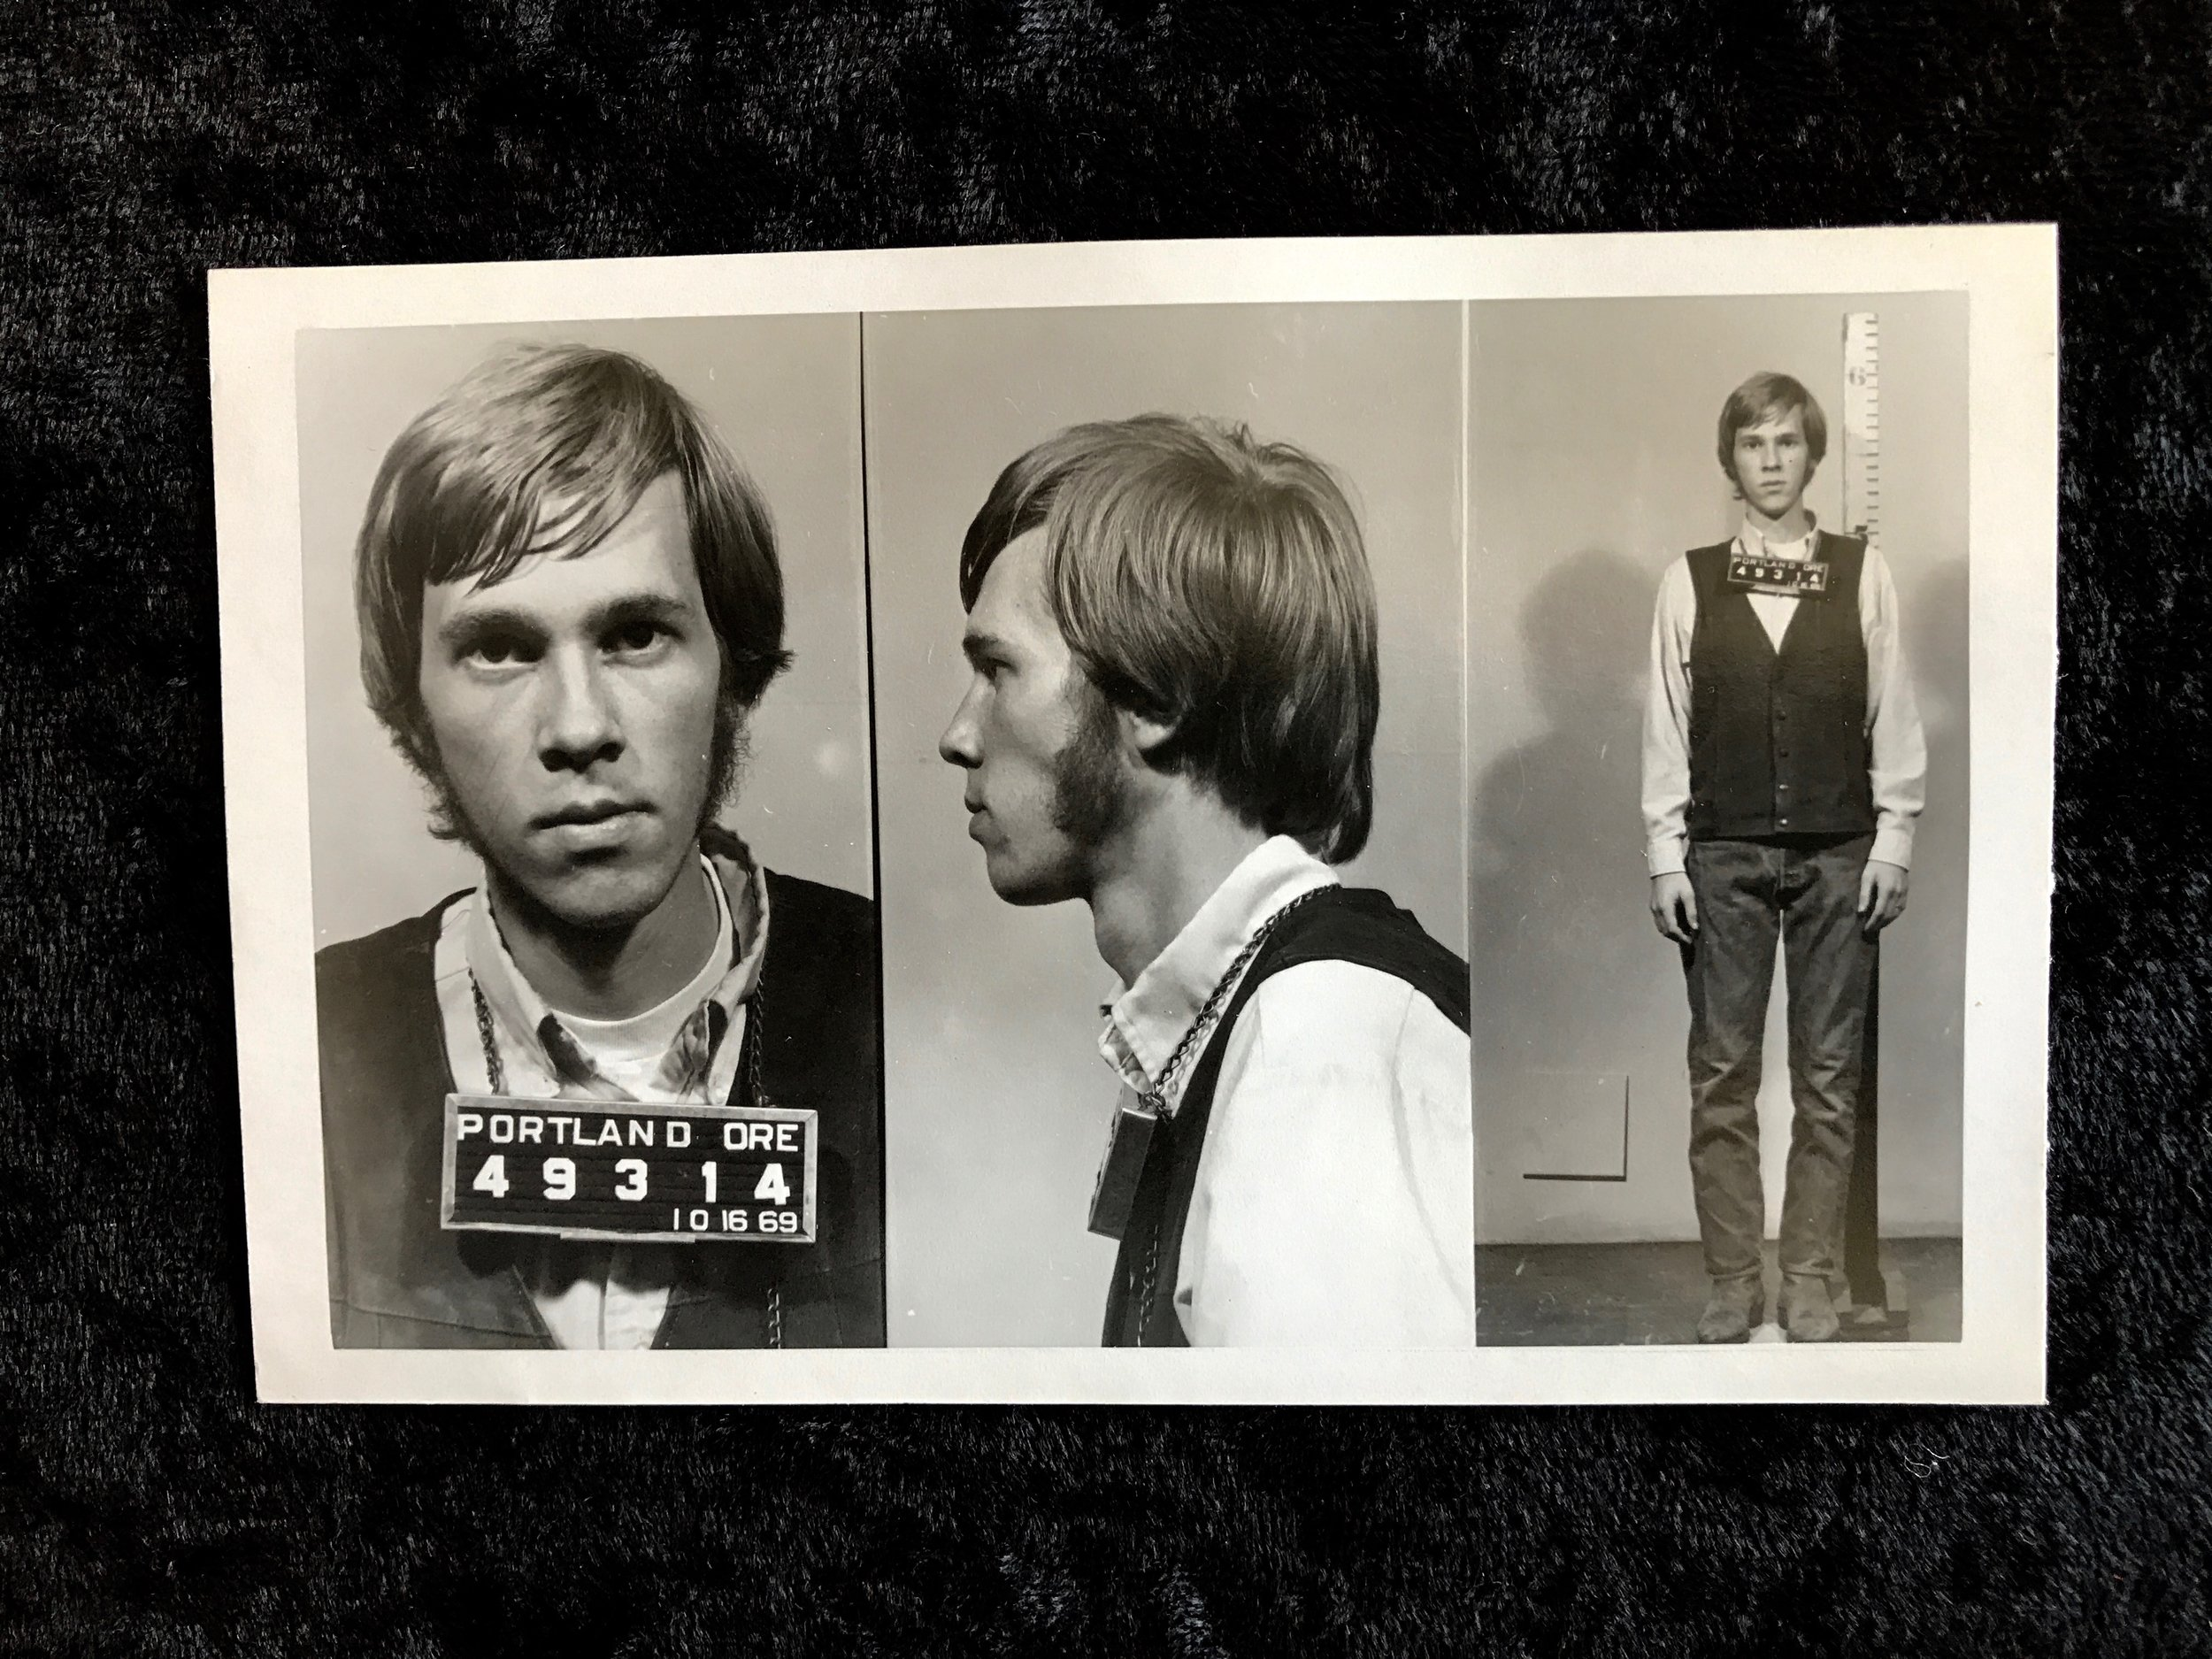 1969 - Hippie Man with Cool Sideburns Busted